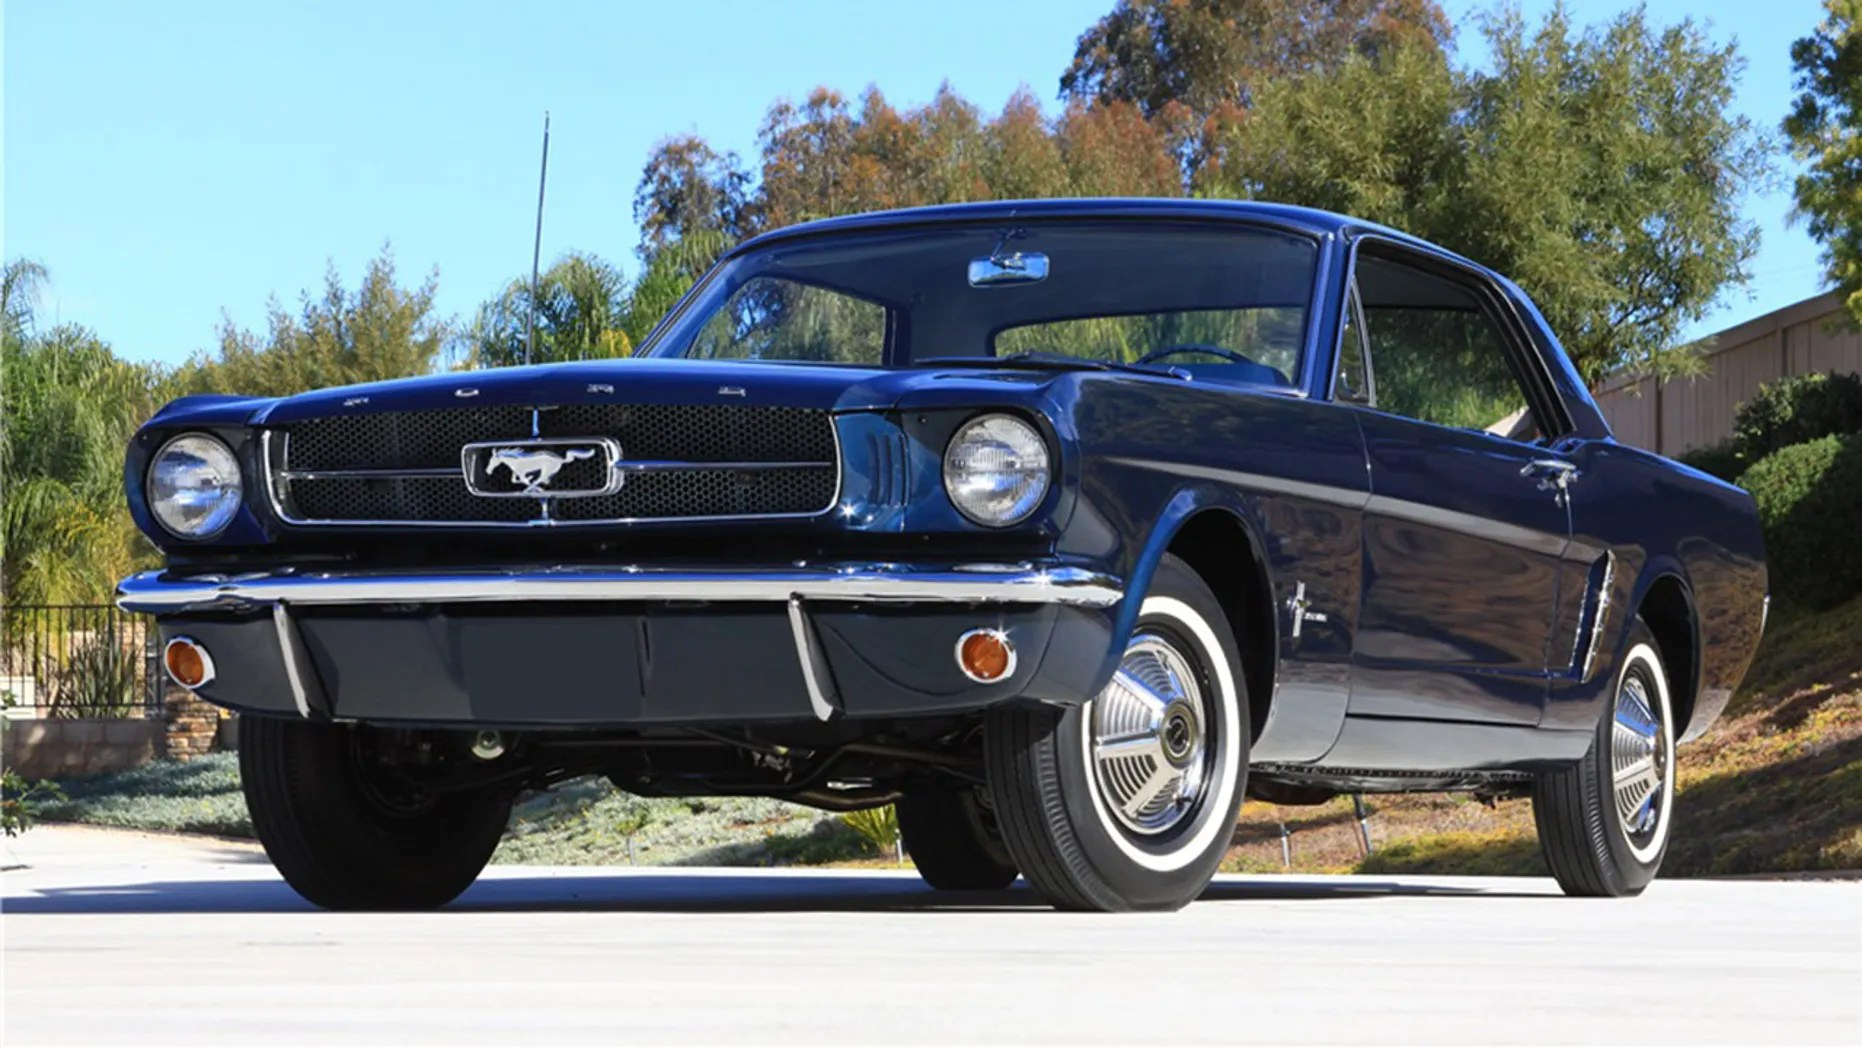 Coupe Ford The First Mustang Coupe Ford Built Heads To Auction Fox News